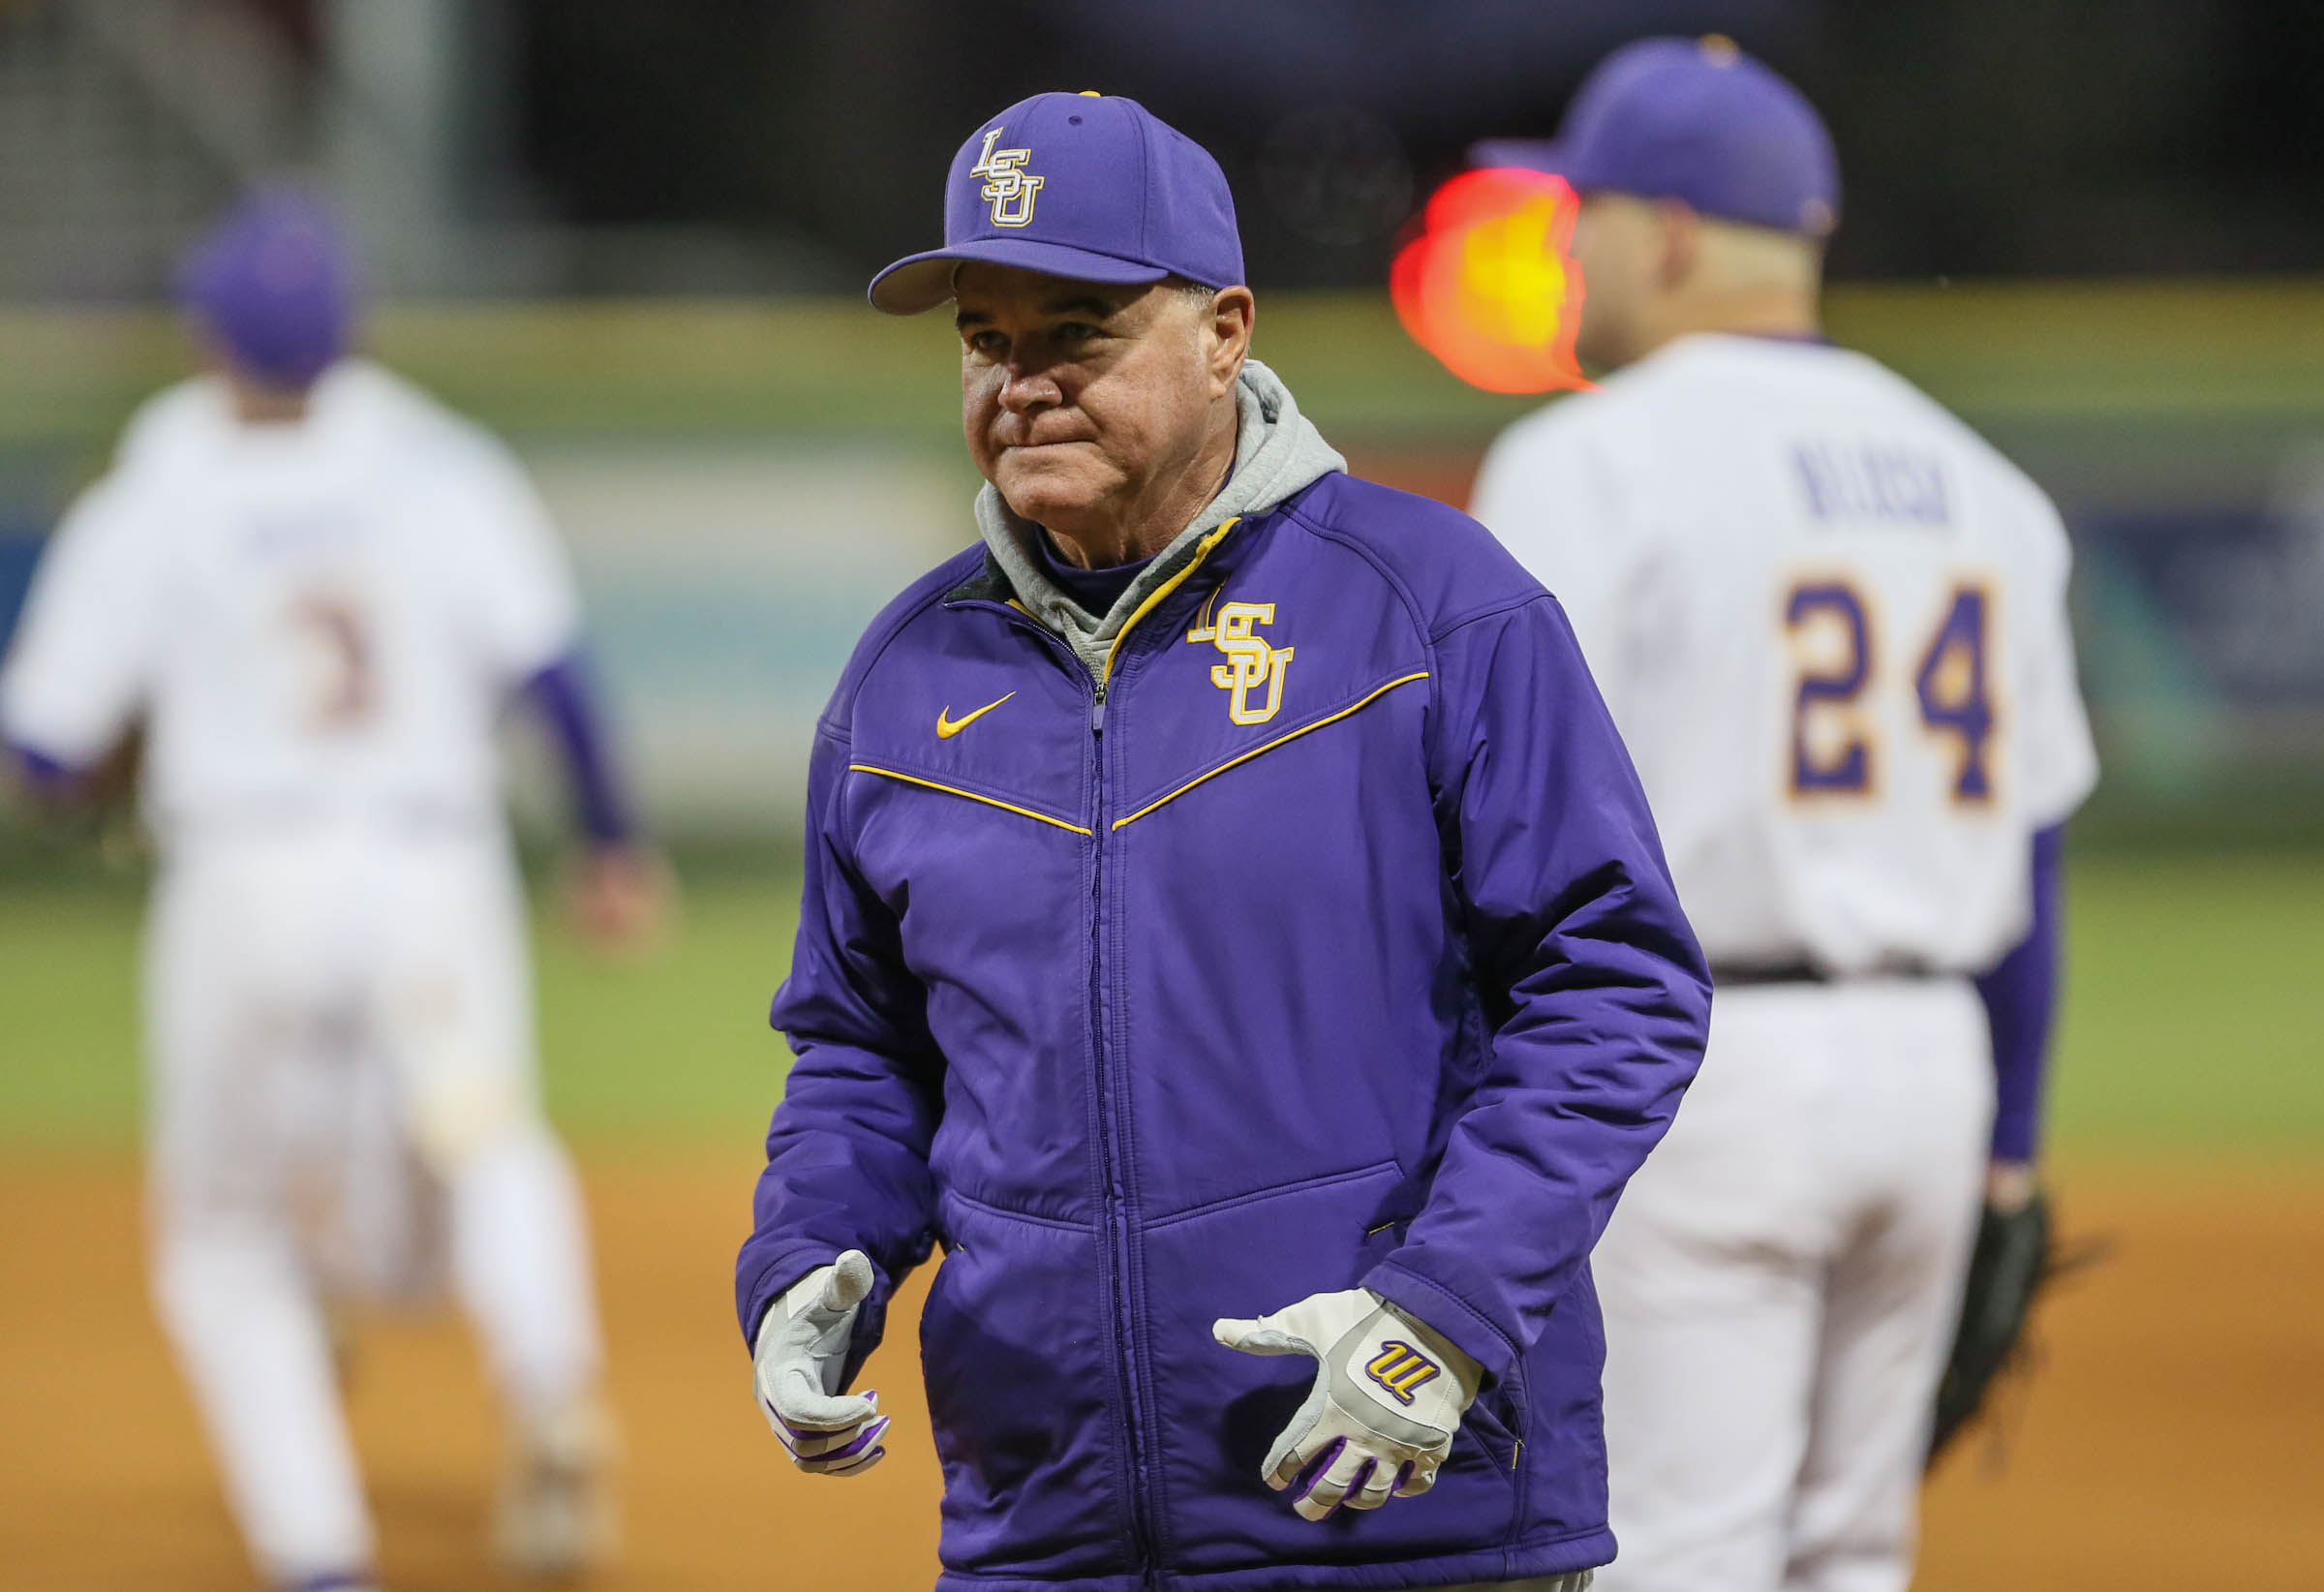 Lsu Baseball Roster Possibly Facing Overload Situation